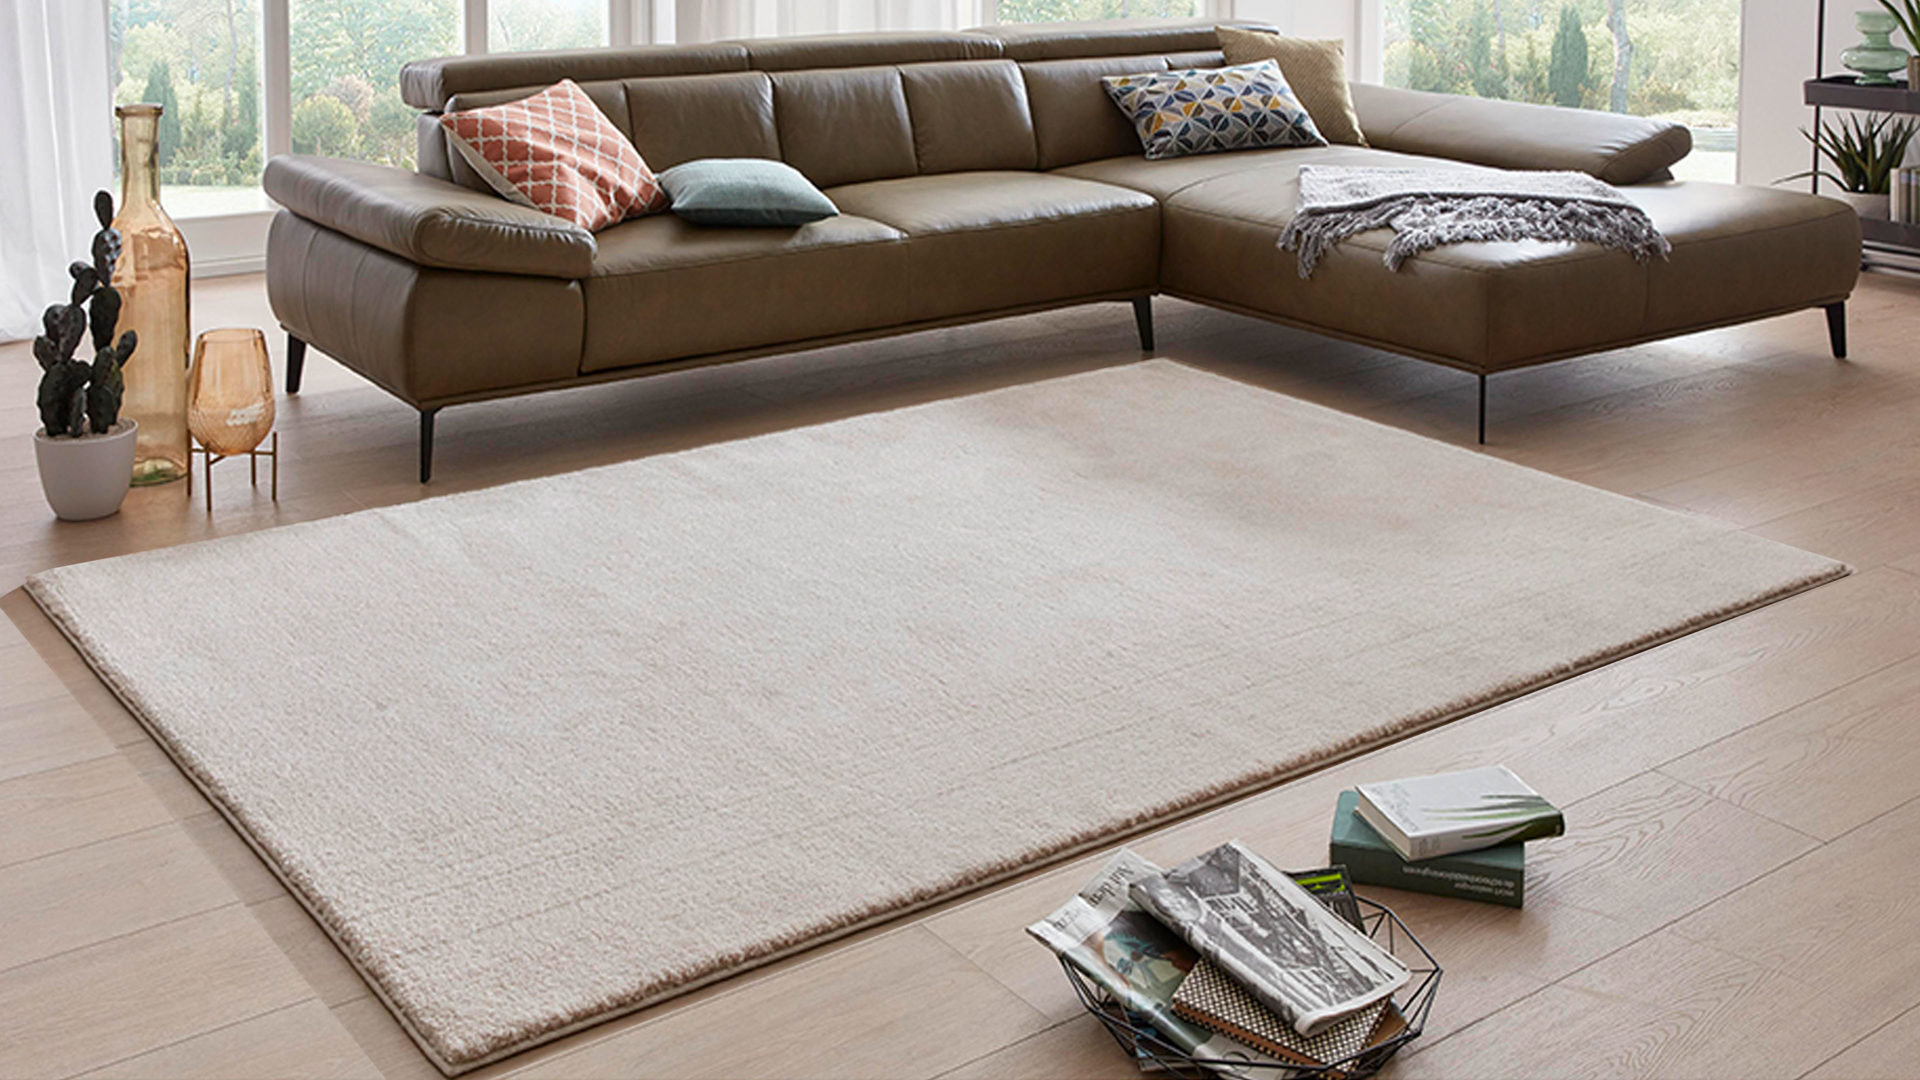 Webteppich Interliving aus Kunstfaser in Beige Interliving Teppich Serie L-8500 beige-mix – ca. 160 x 230 cm